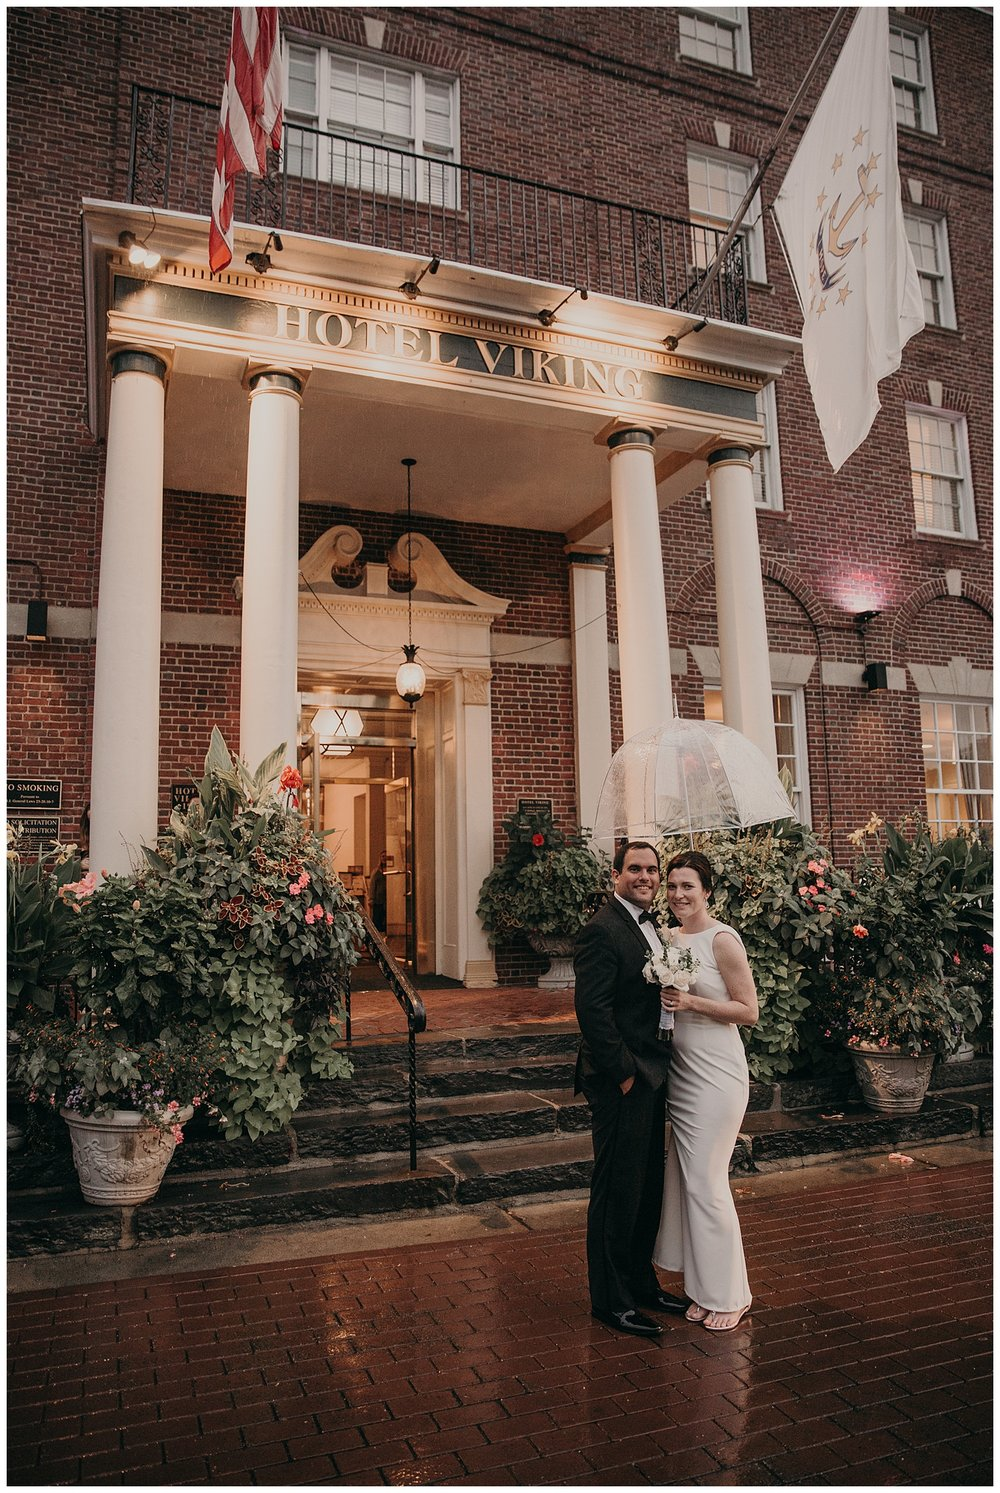 Mike_Kelly_Hotel_Viking_Newport_Rhode_Island_Wedding_029.jpeg